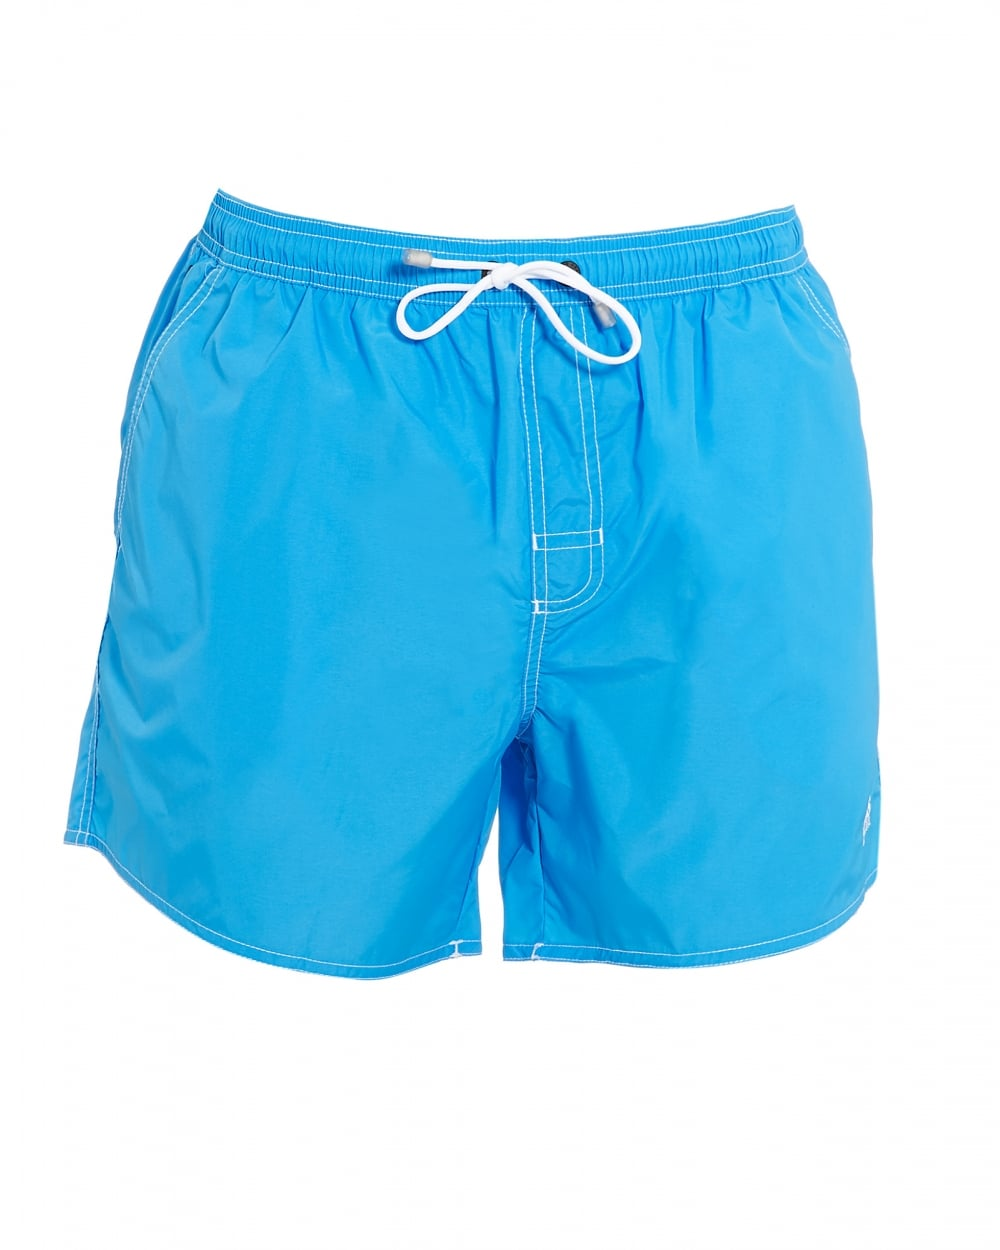 7492141365d34 Hugo Boss Body Mens Lobster Short Bright Blue Swim Shorts